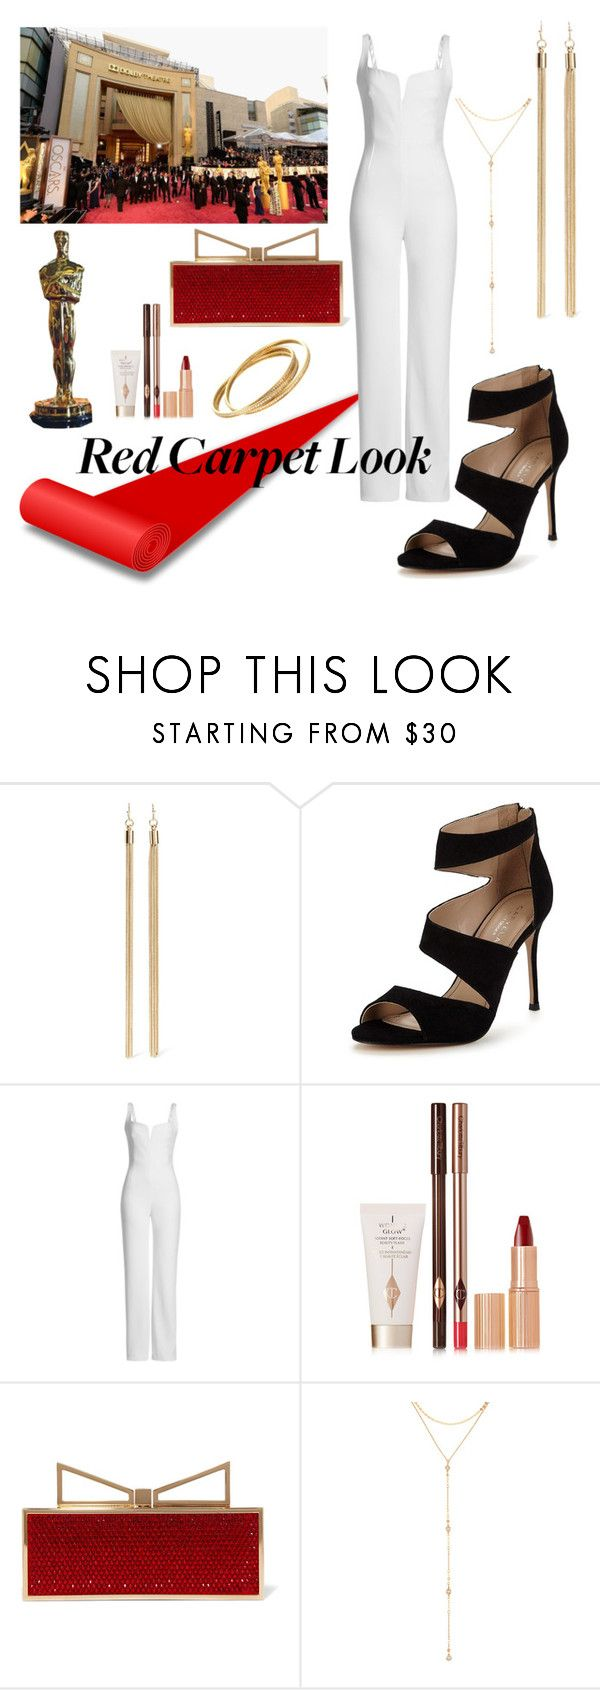 """Red Carpet Look"" by kawaiipotato0 ❤ liked on Polyvore featuring Kenneth Jay Lane, Carvela, Galvan, Charlotte Tilbury, Sara Battaglia, Fragments and Cartier"